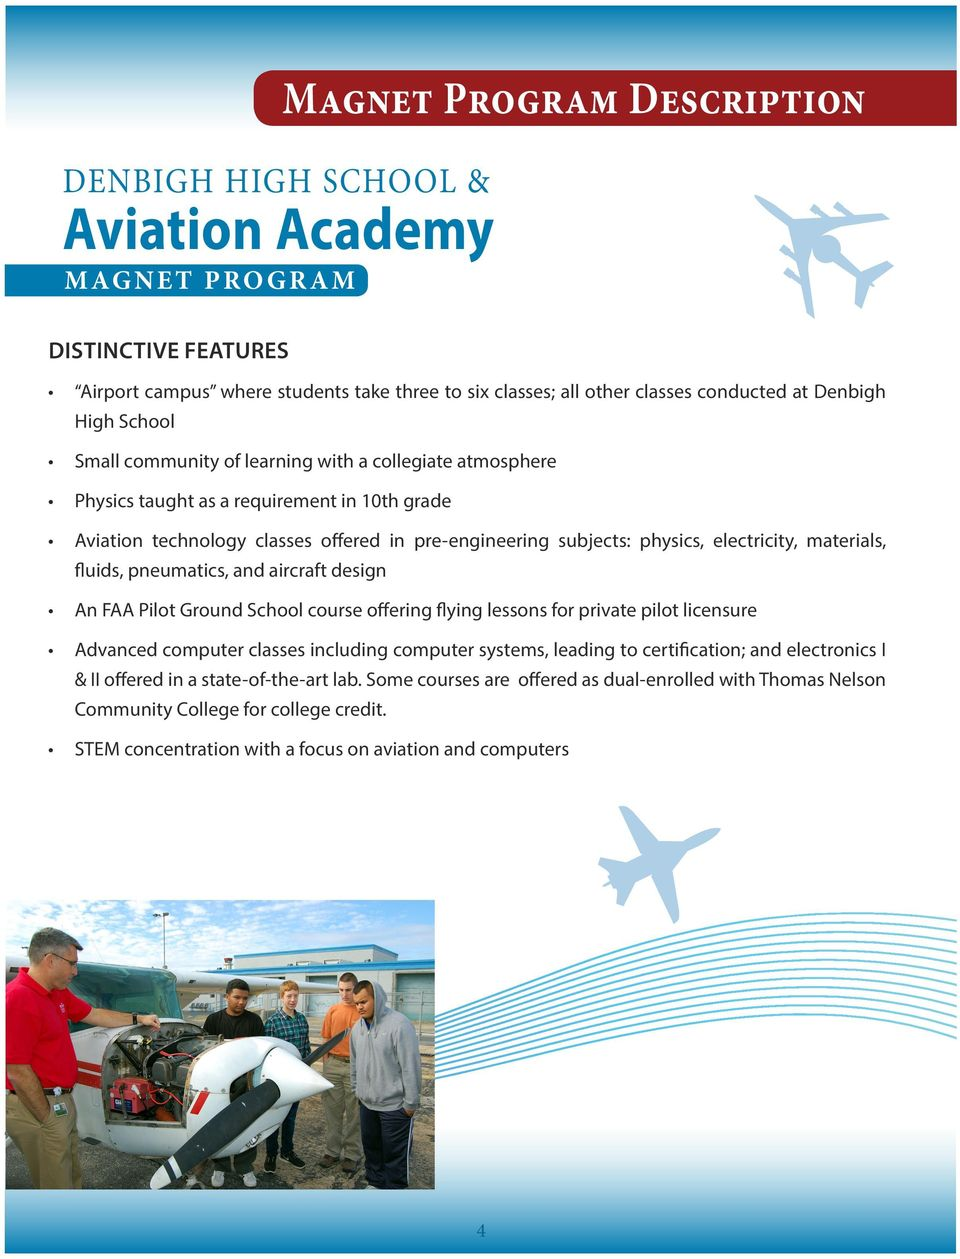 electricity, materials, fluids, pneumatics, and aircraft design An FAA Pilot Ground School course offering flying lessons for private pilot licensure Advanced computer classes including computer